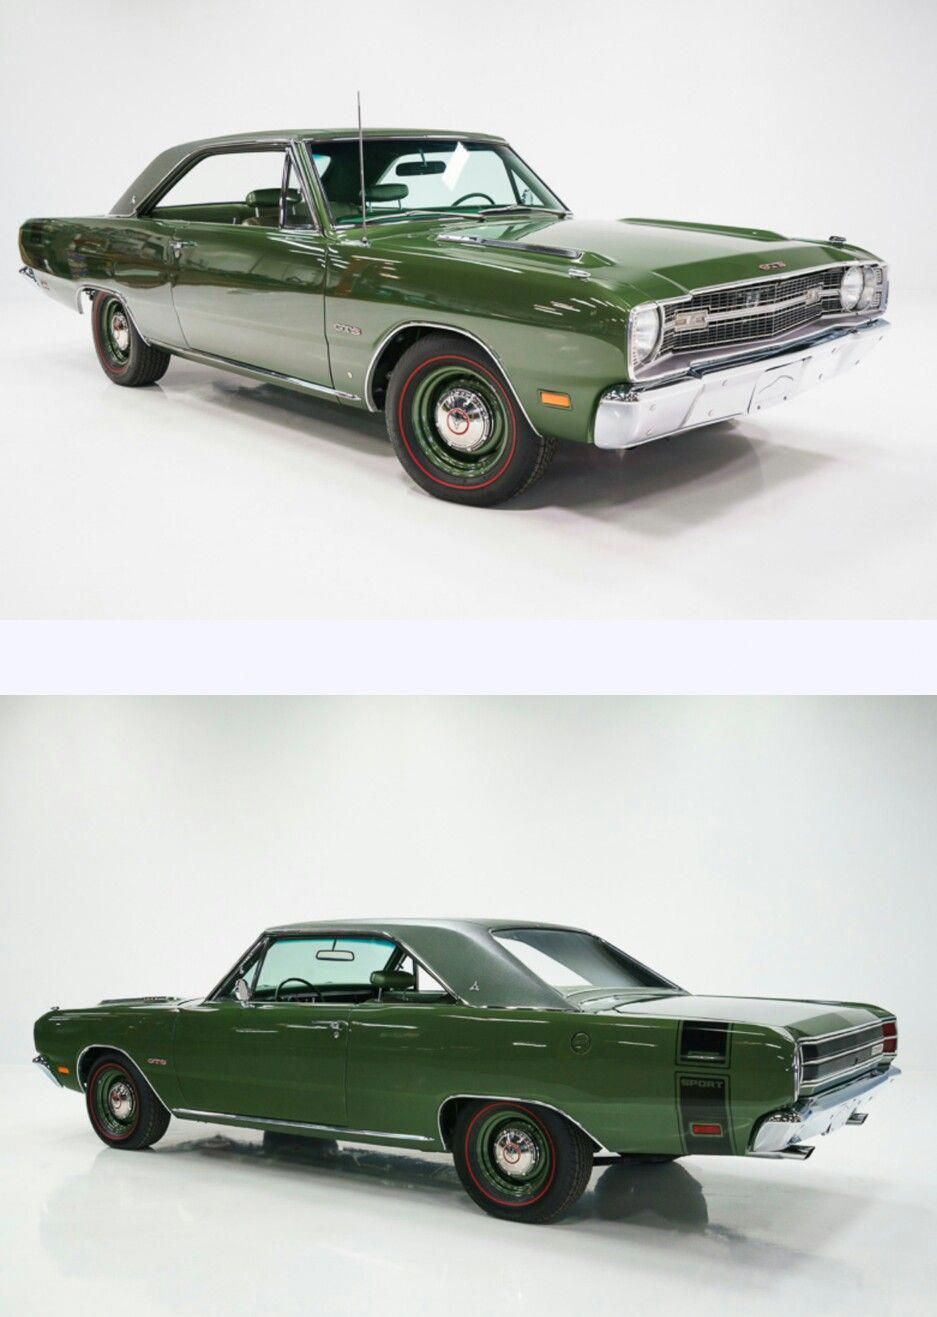 1969 Dart Gts 383 More Americanmusclecars Clasic Cars Coches